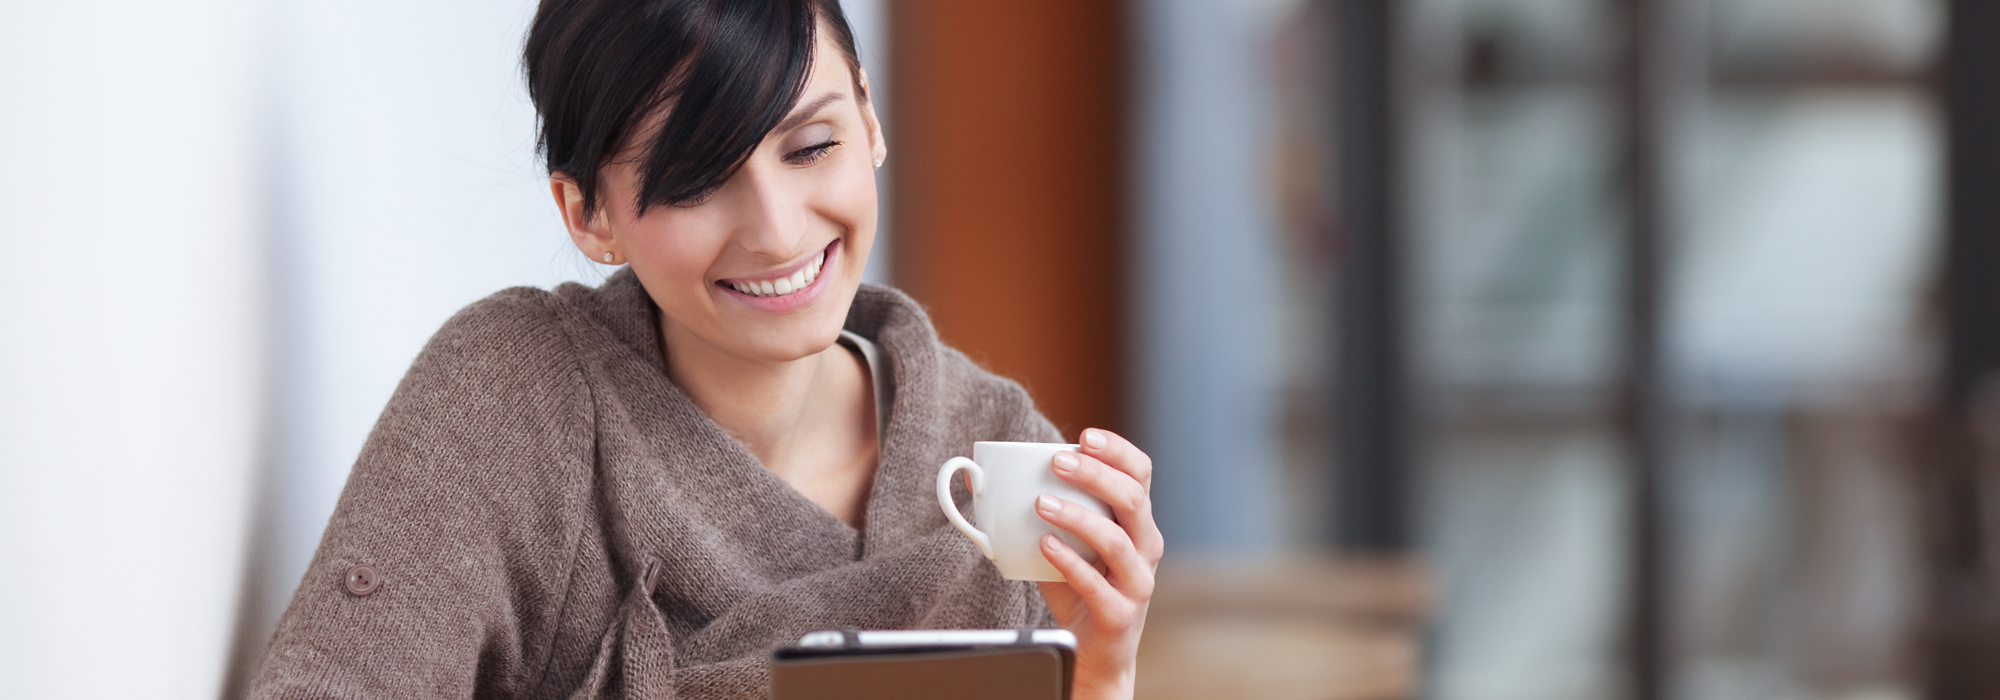 Woman happy with our office coffee services in Montreal, QC.